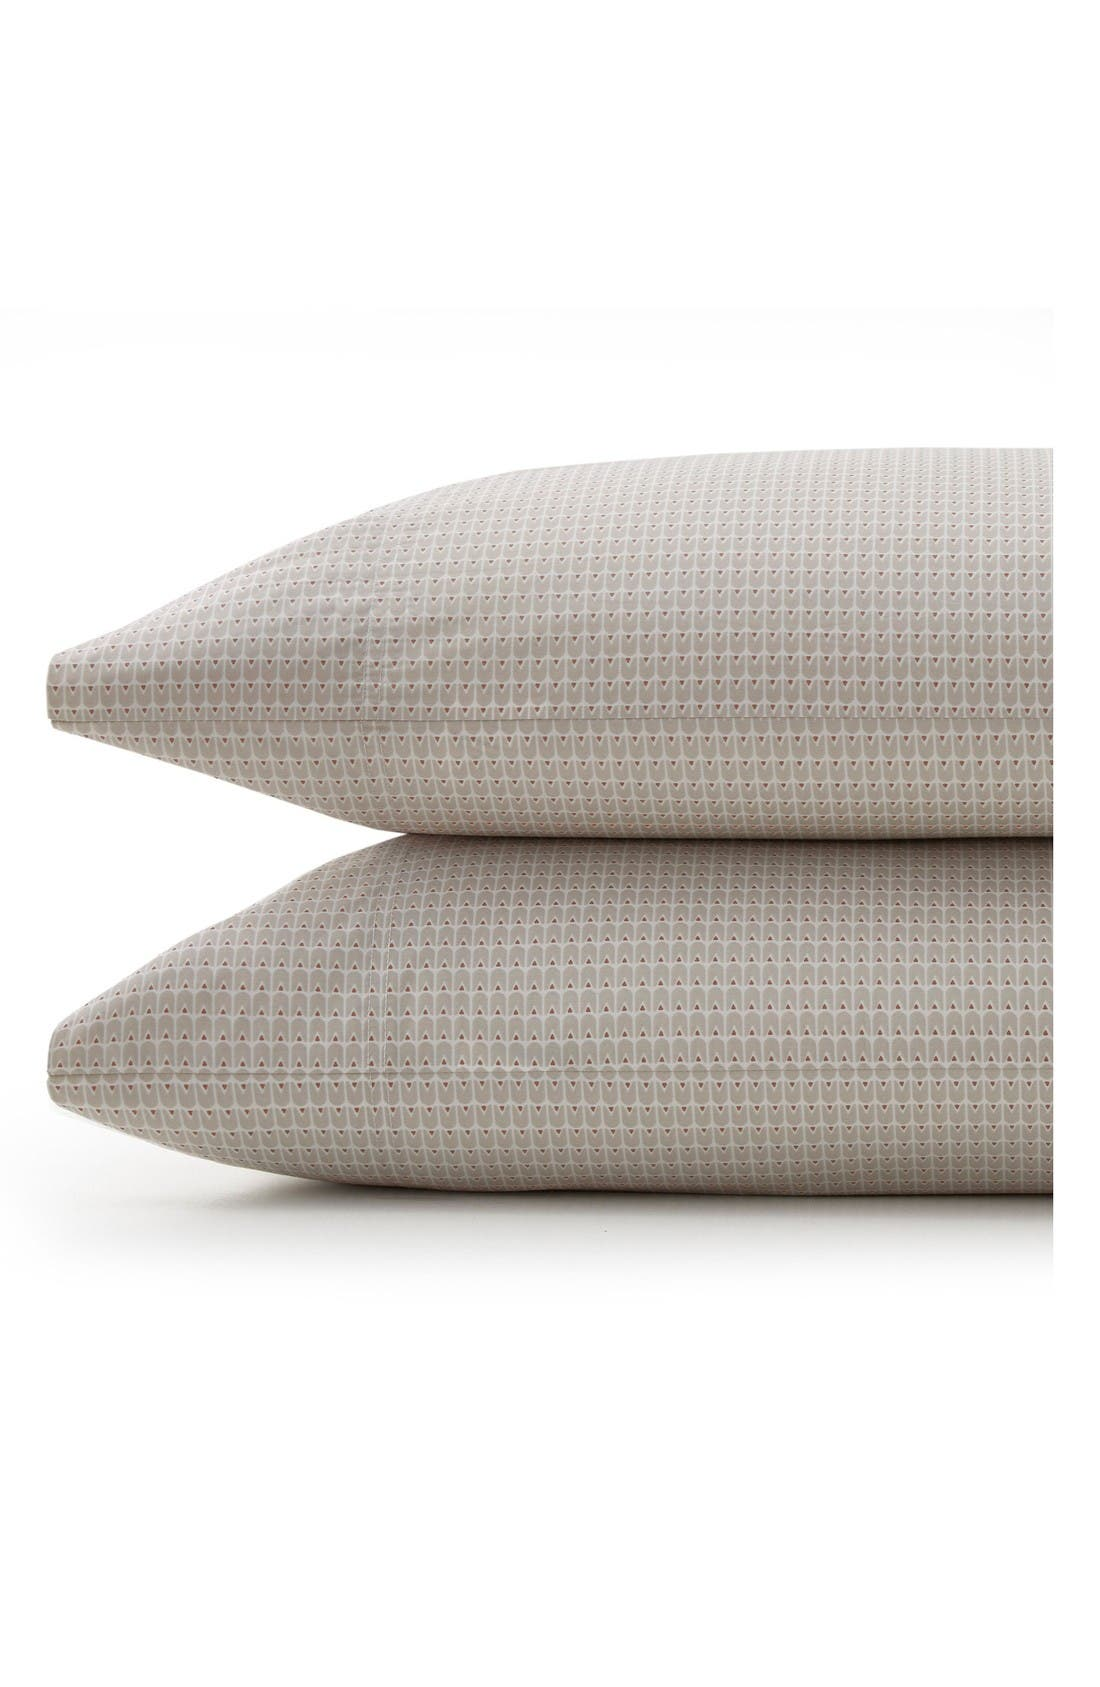 DwellStudio 'Ondine' 300 Thread Count Pillowcases